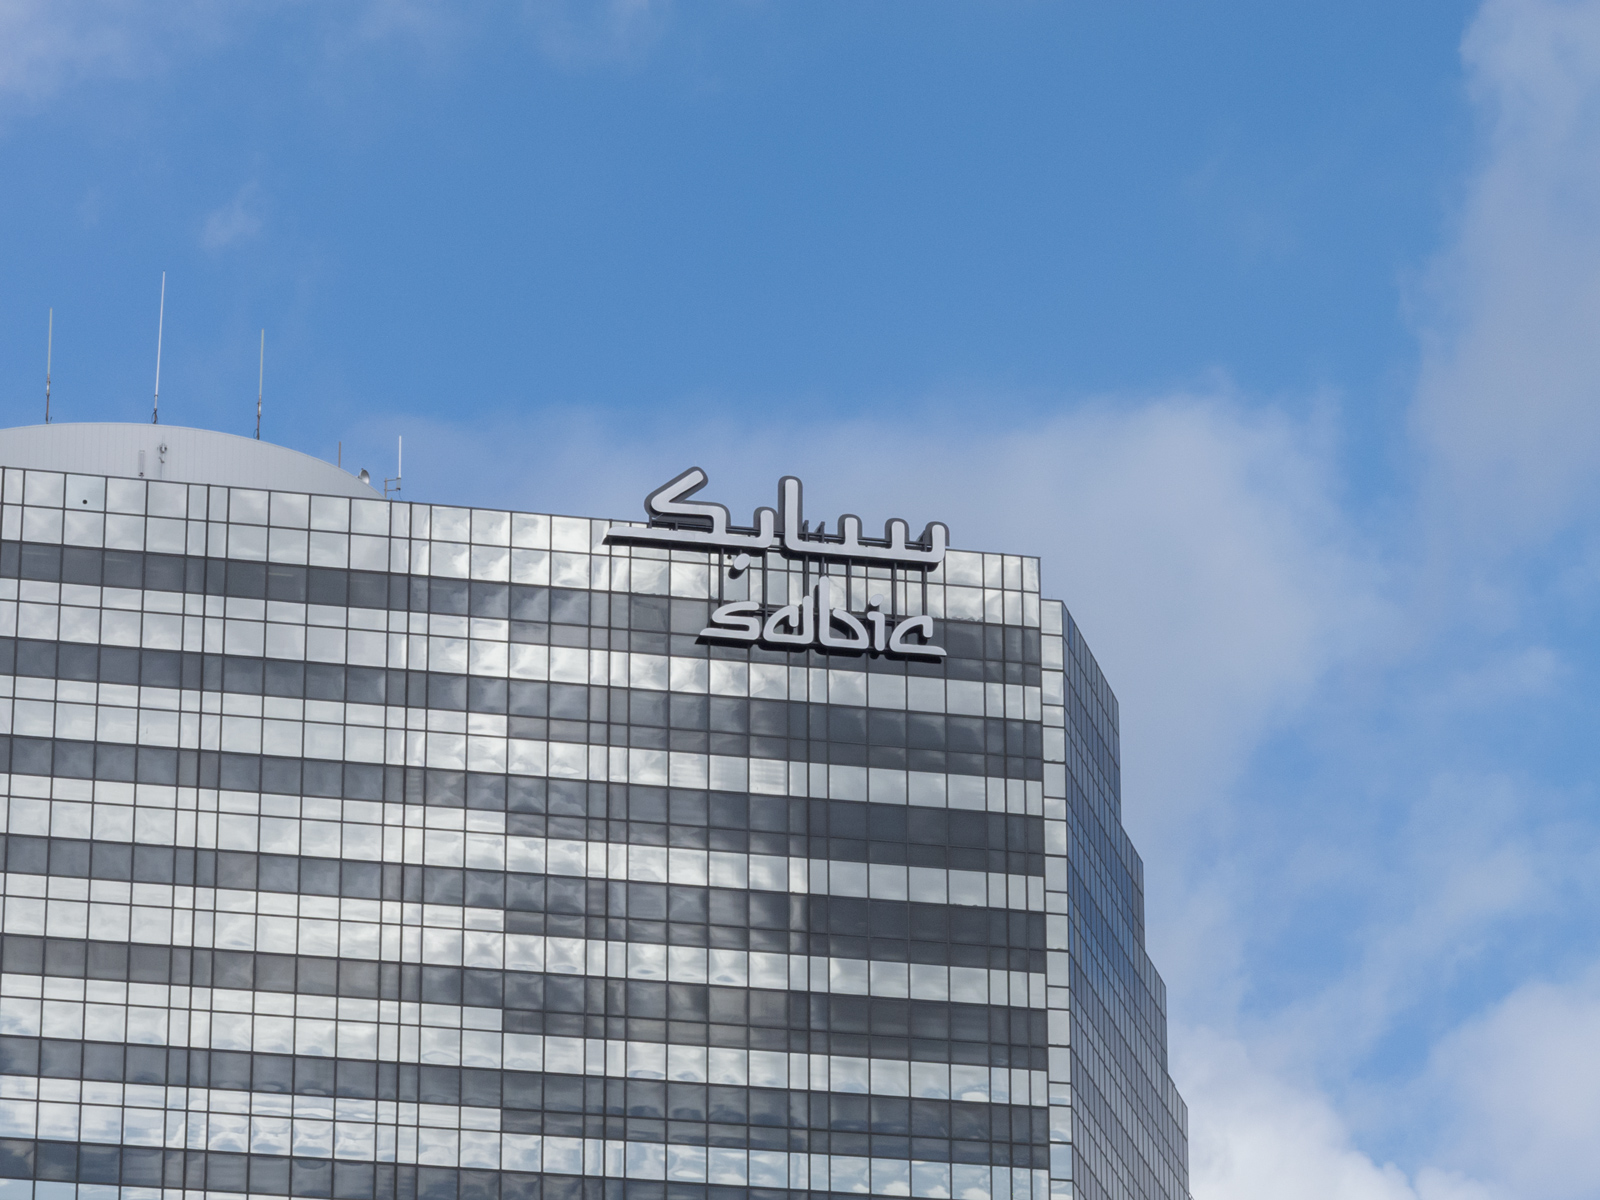 Close up of custom grand scale, face-illuminated channel letters attached to roof of 25-story office tower.